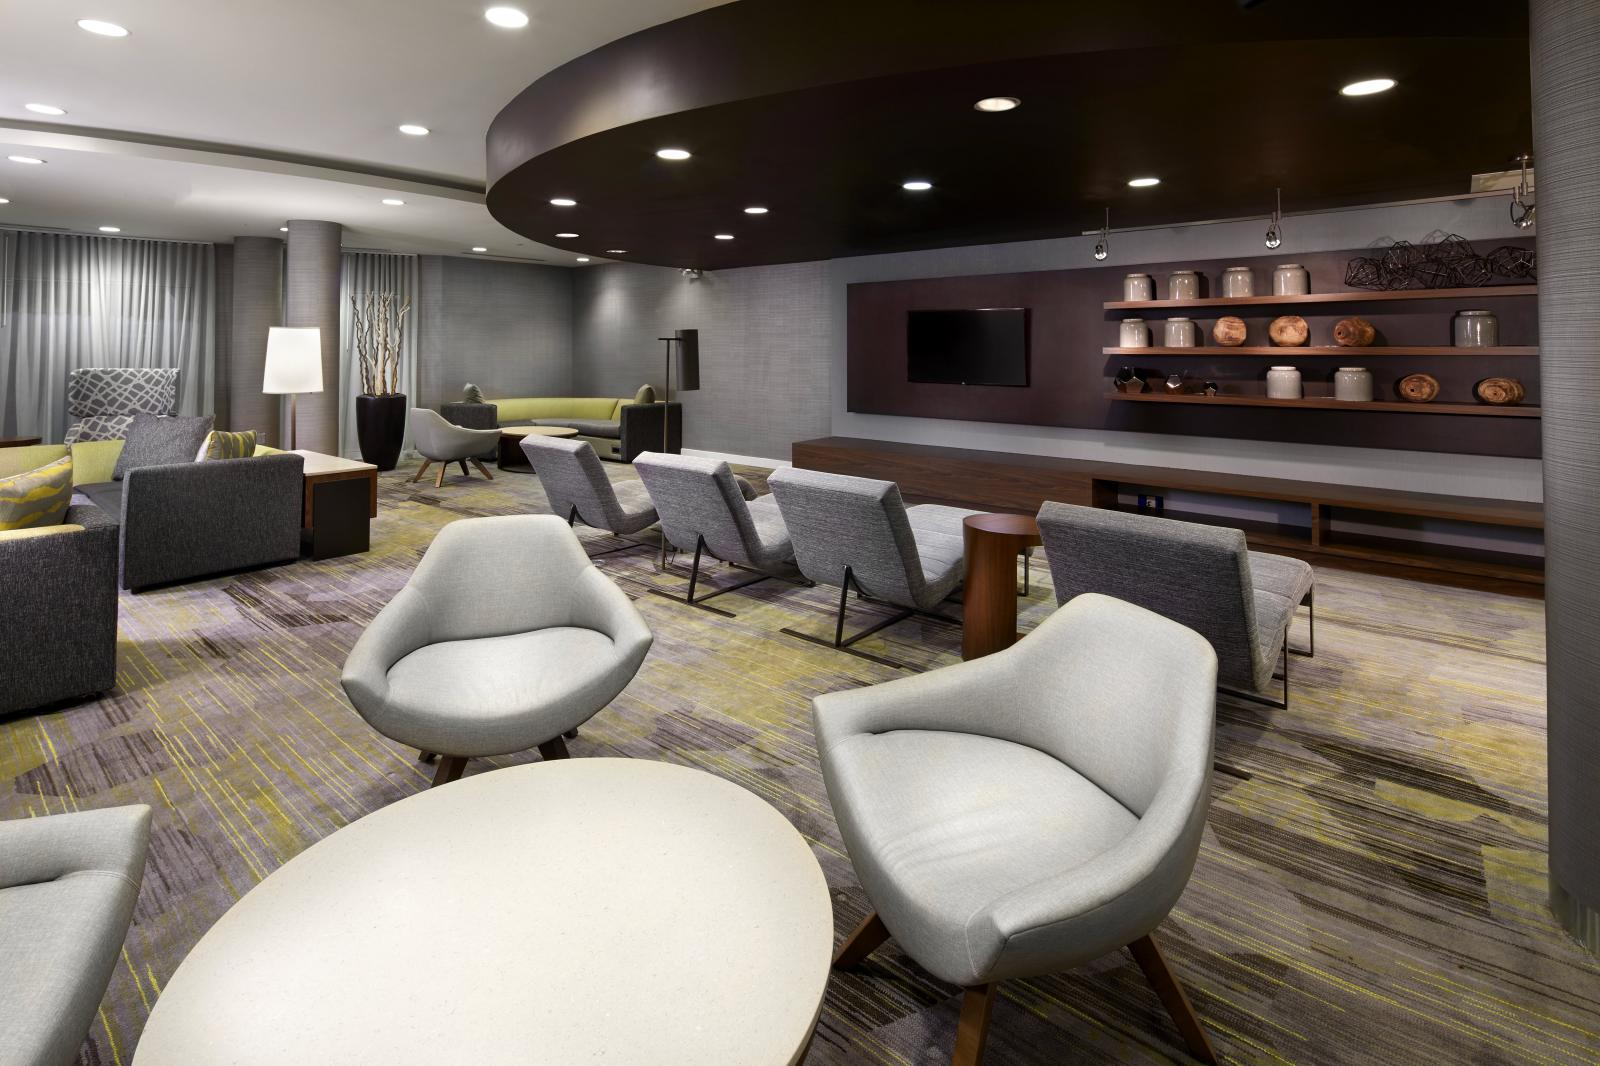 Courtyard by Marriott - Edison, New Jersey